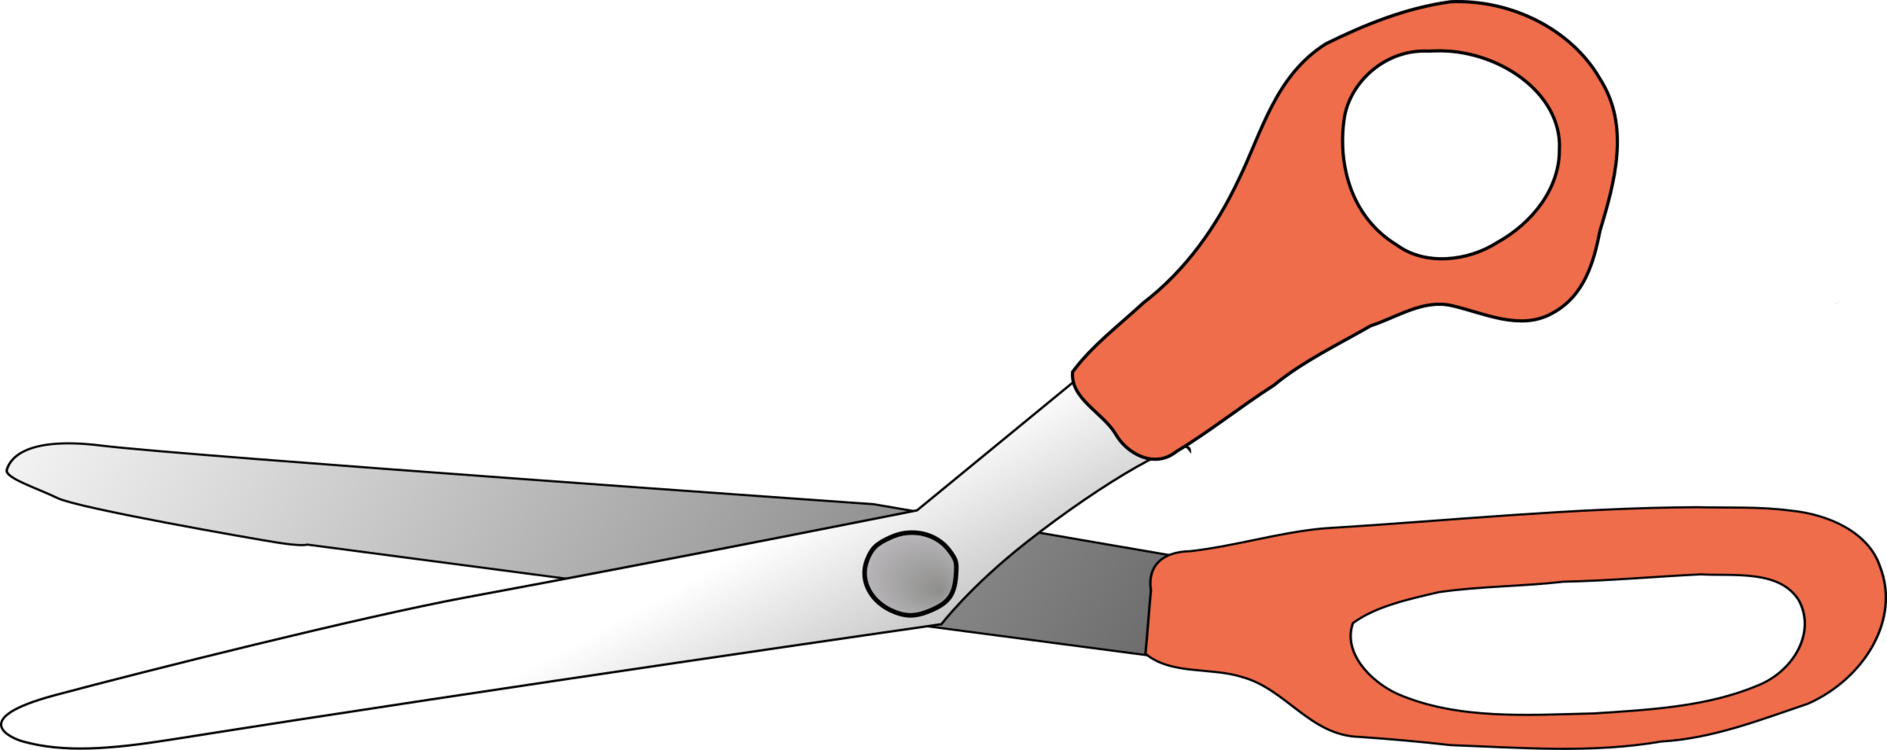 Drawing cutting clipart. Hair shears scissors download